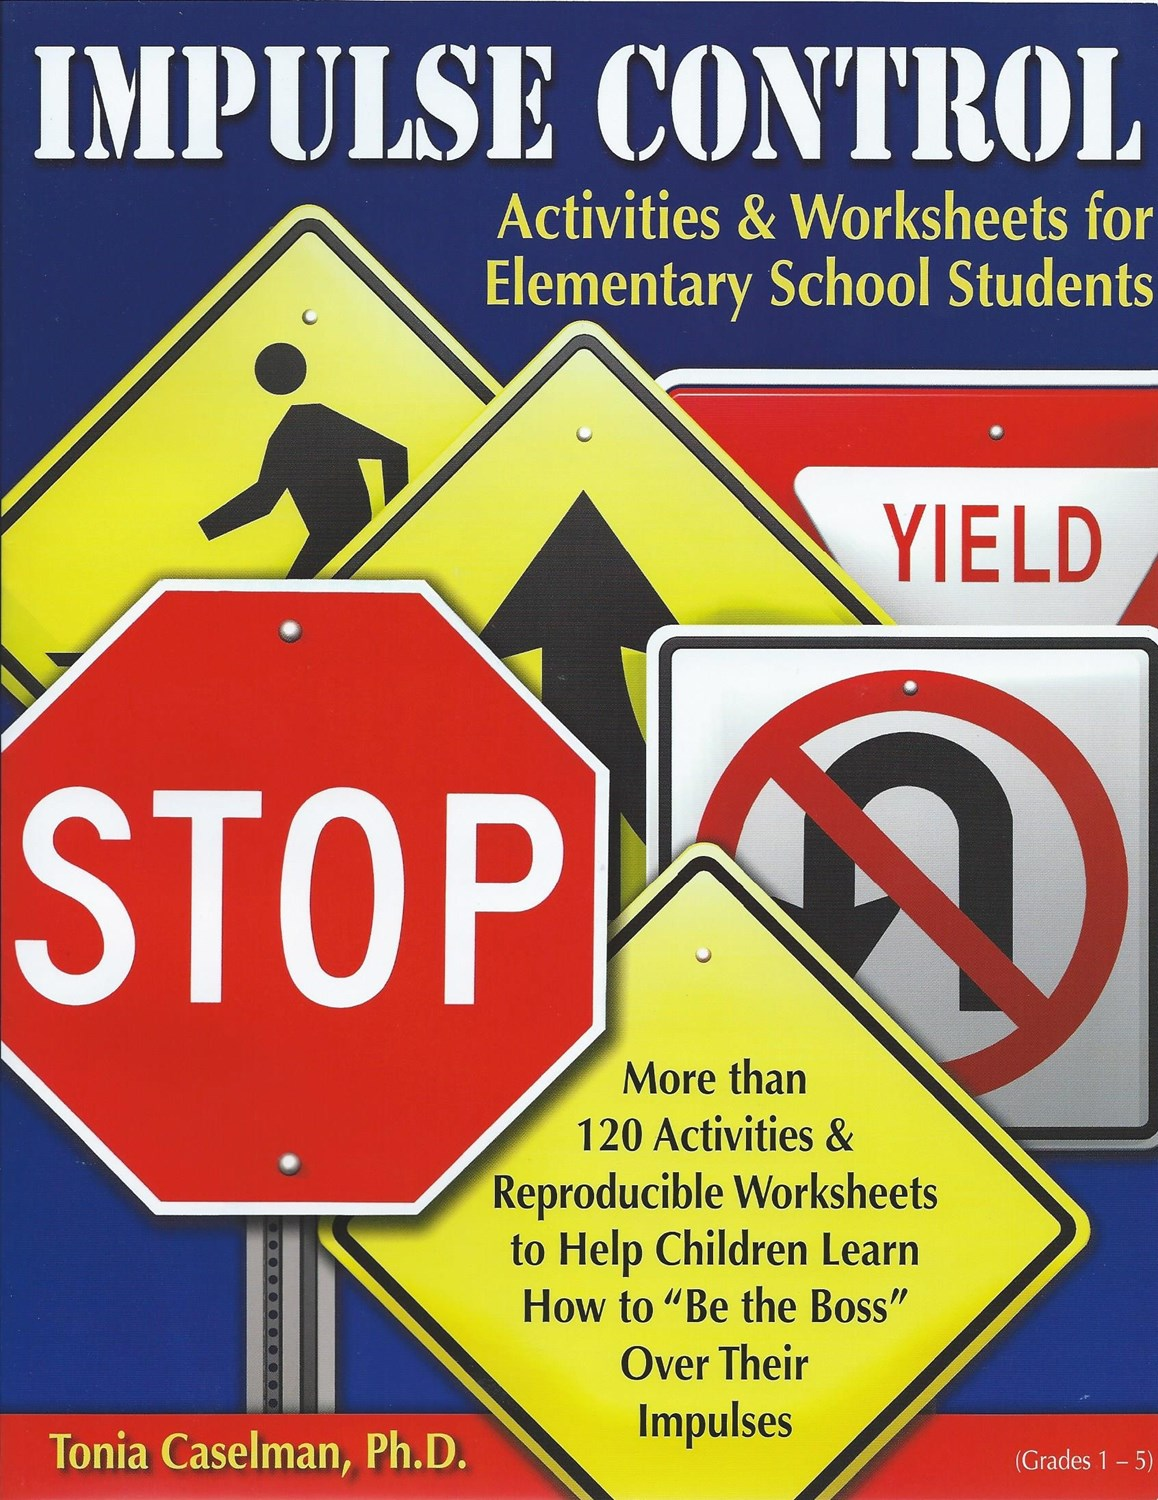 Worksheets Impulse Control Worksheets impulse control activities worksheets for elementary school students with cd